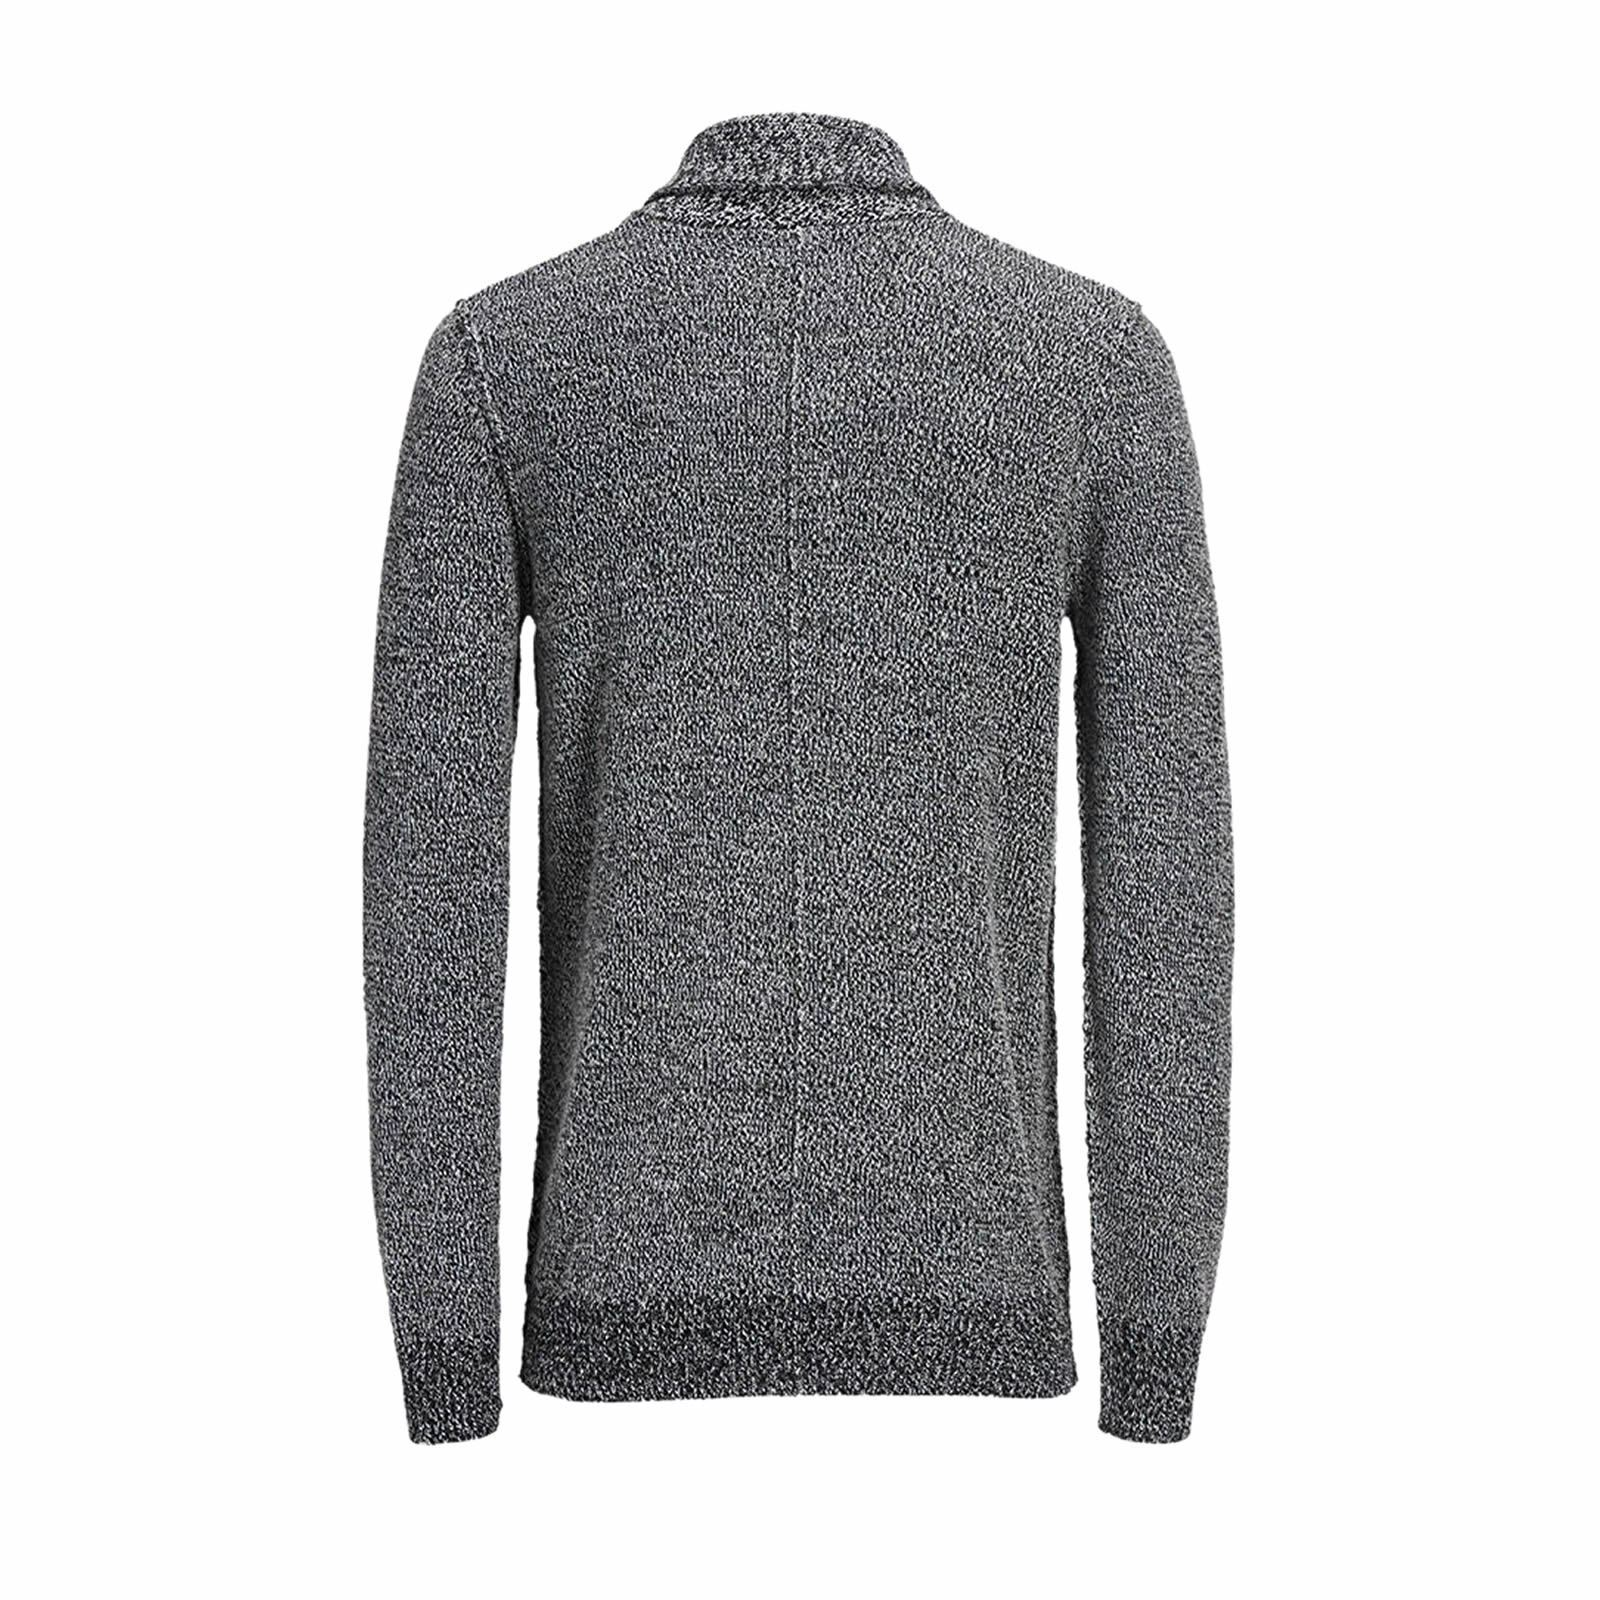 Mens-Cardigan-Jumper-JACK-amp-JONES-Instinct-Shawl-Neck-Button-Up-Sweater thumbnail 3